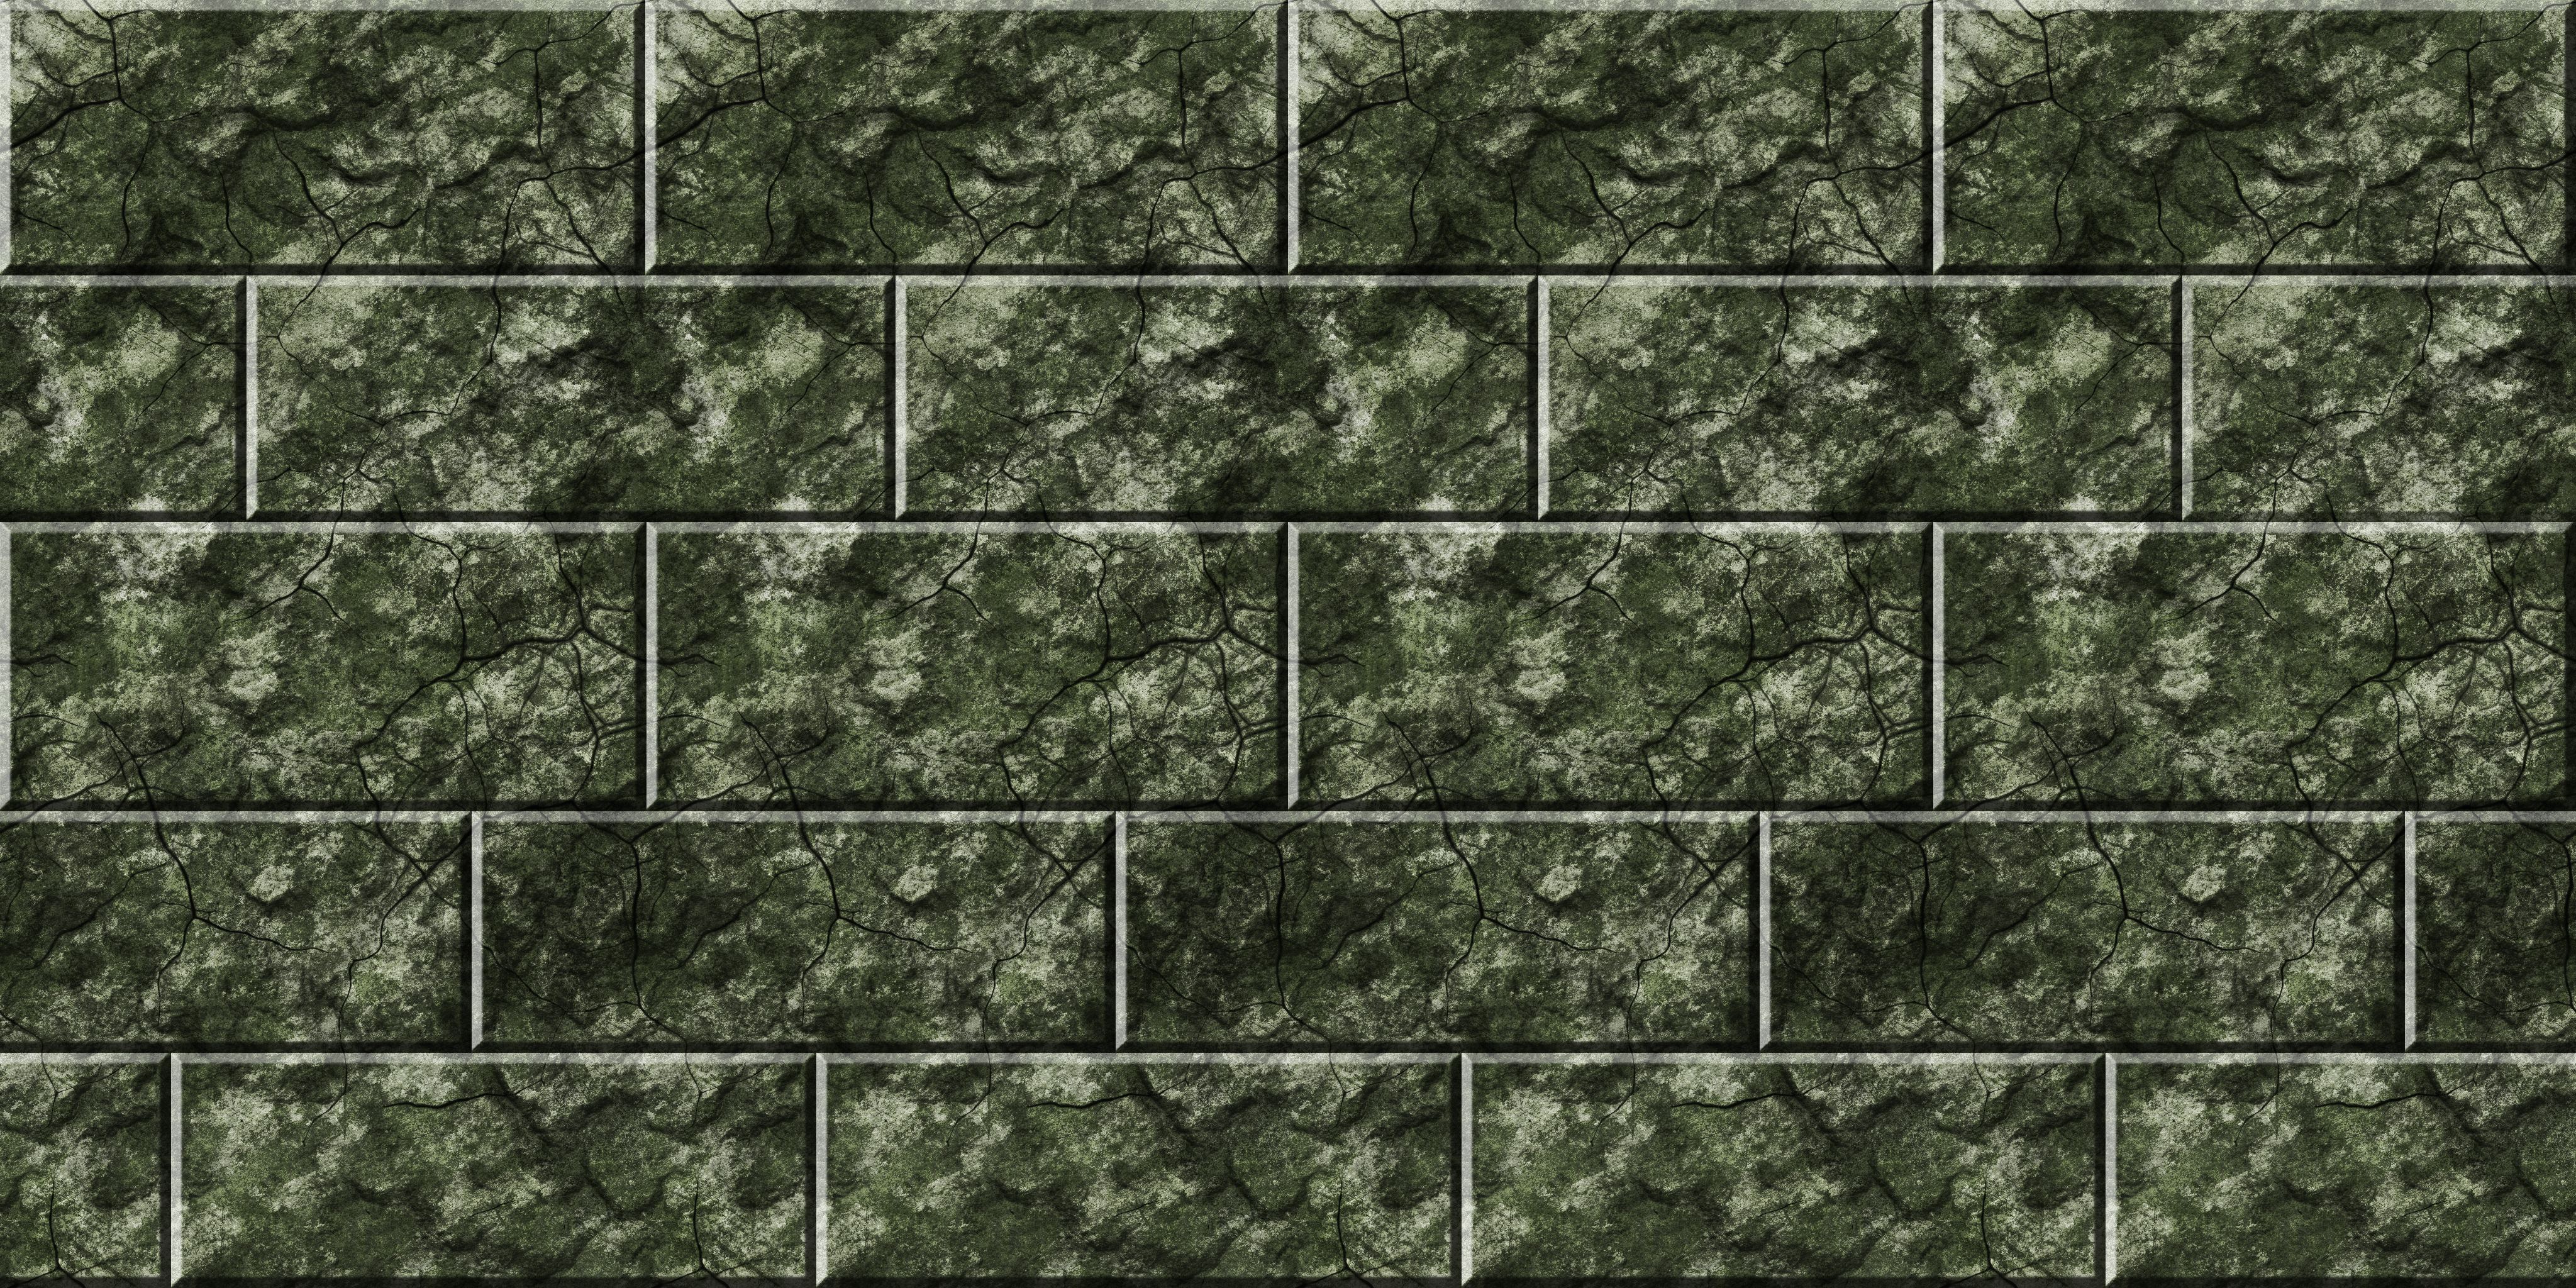 Green Stone Bricks Remake by Hoover1979